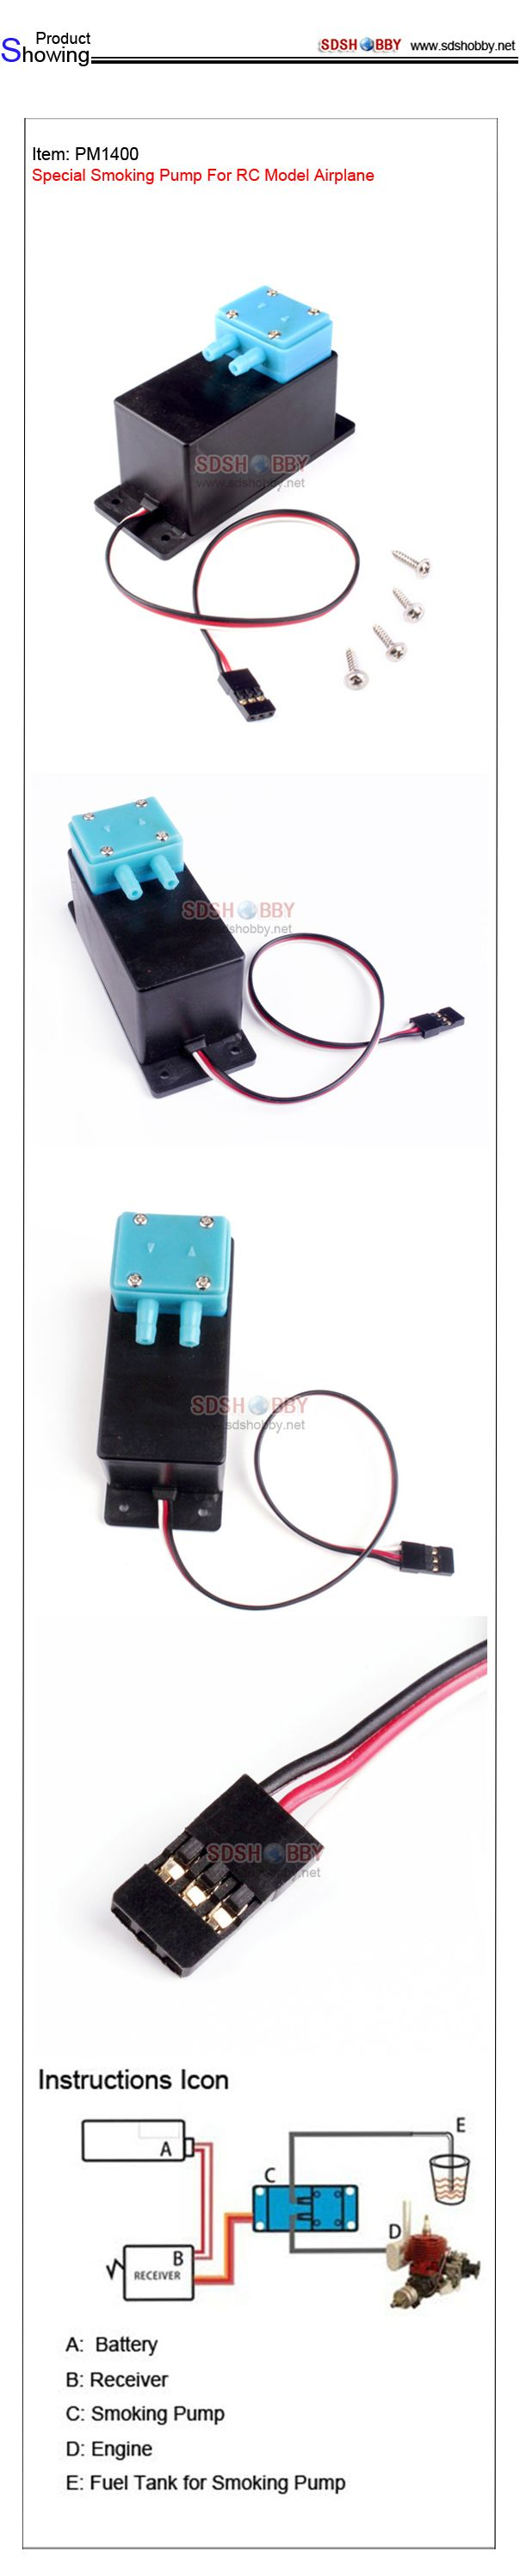 Special Smoking Pump For RC Model Airplane